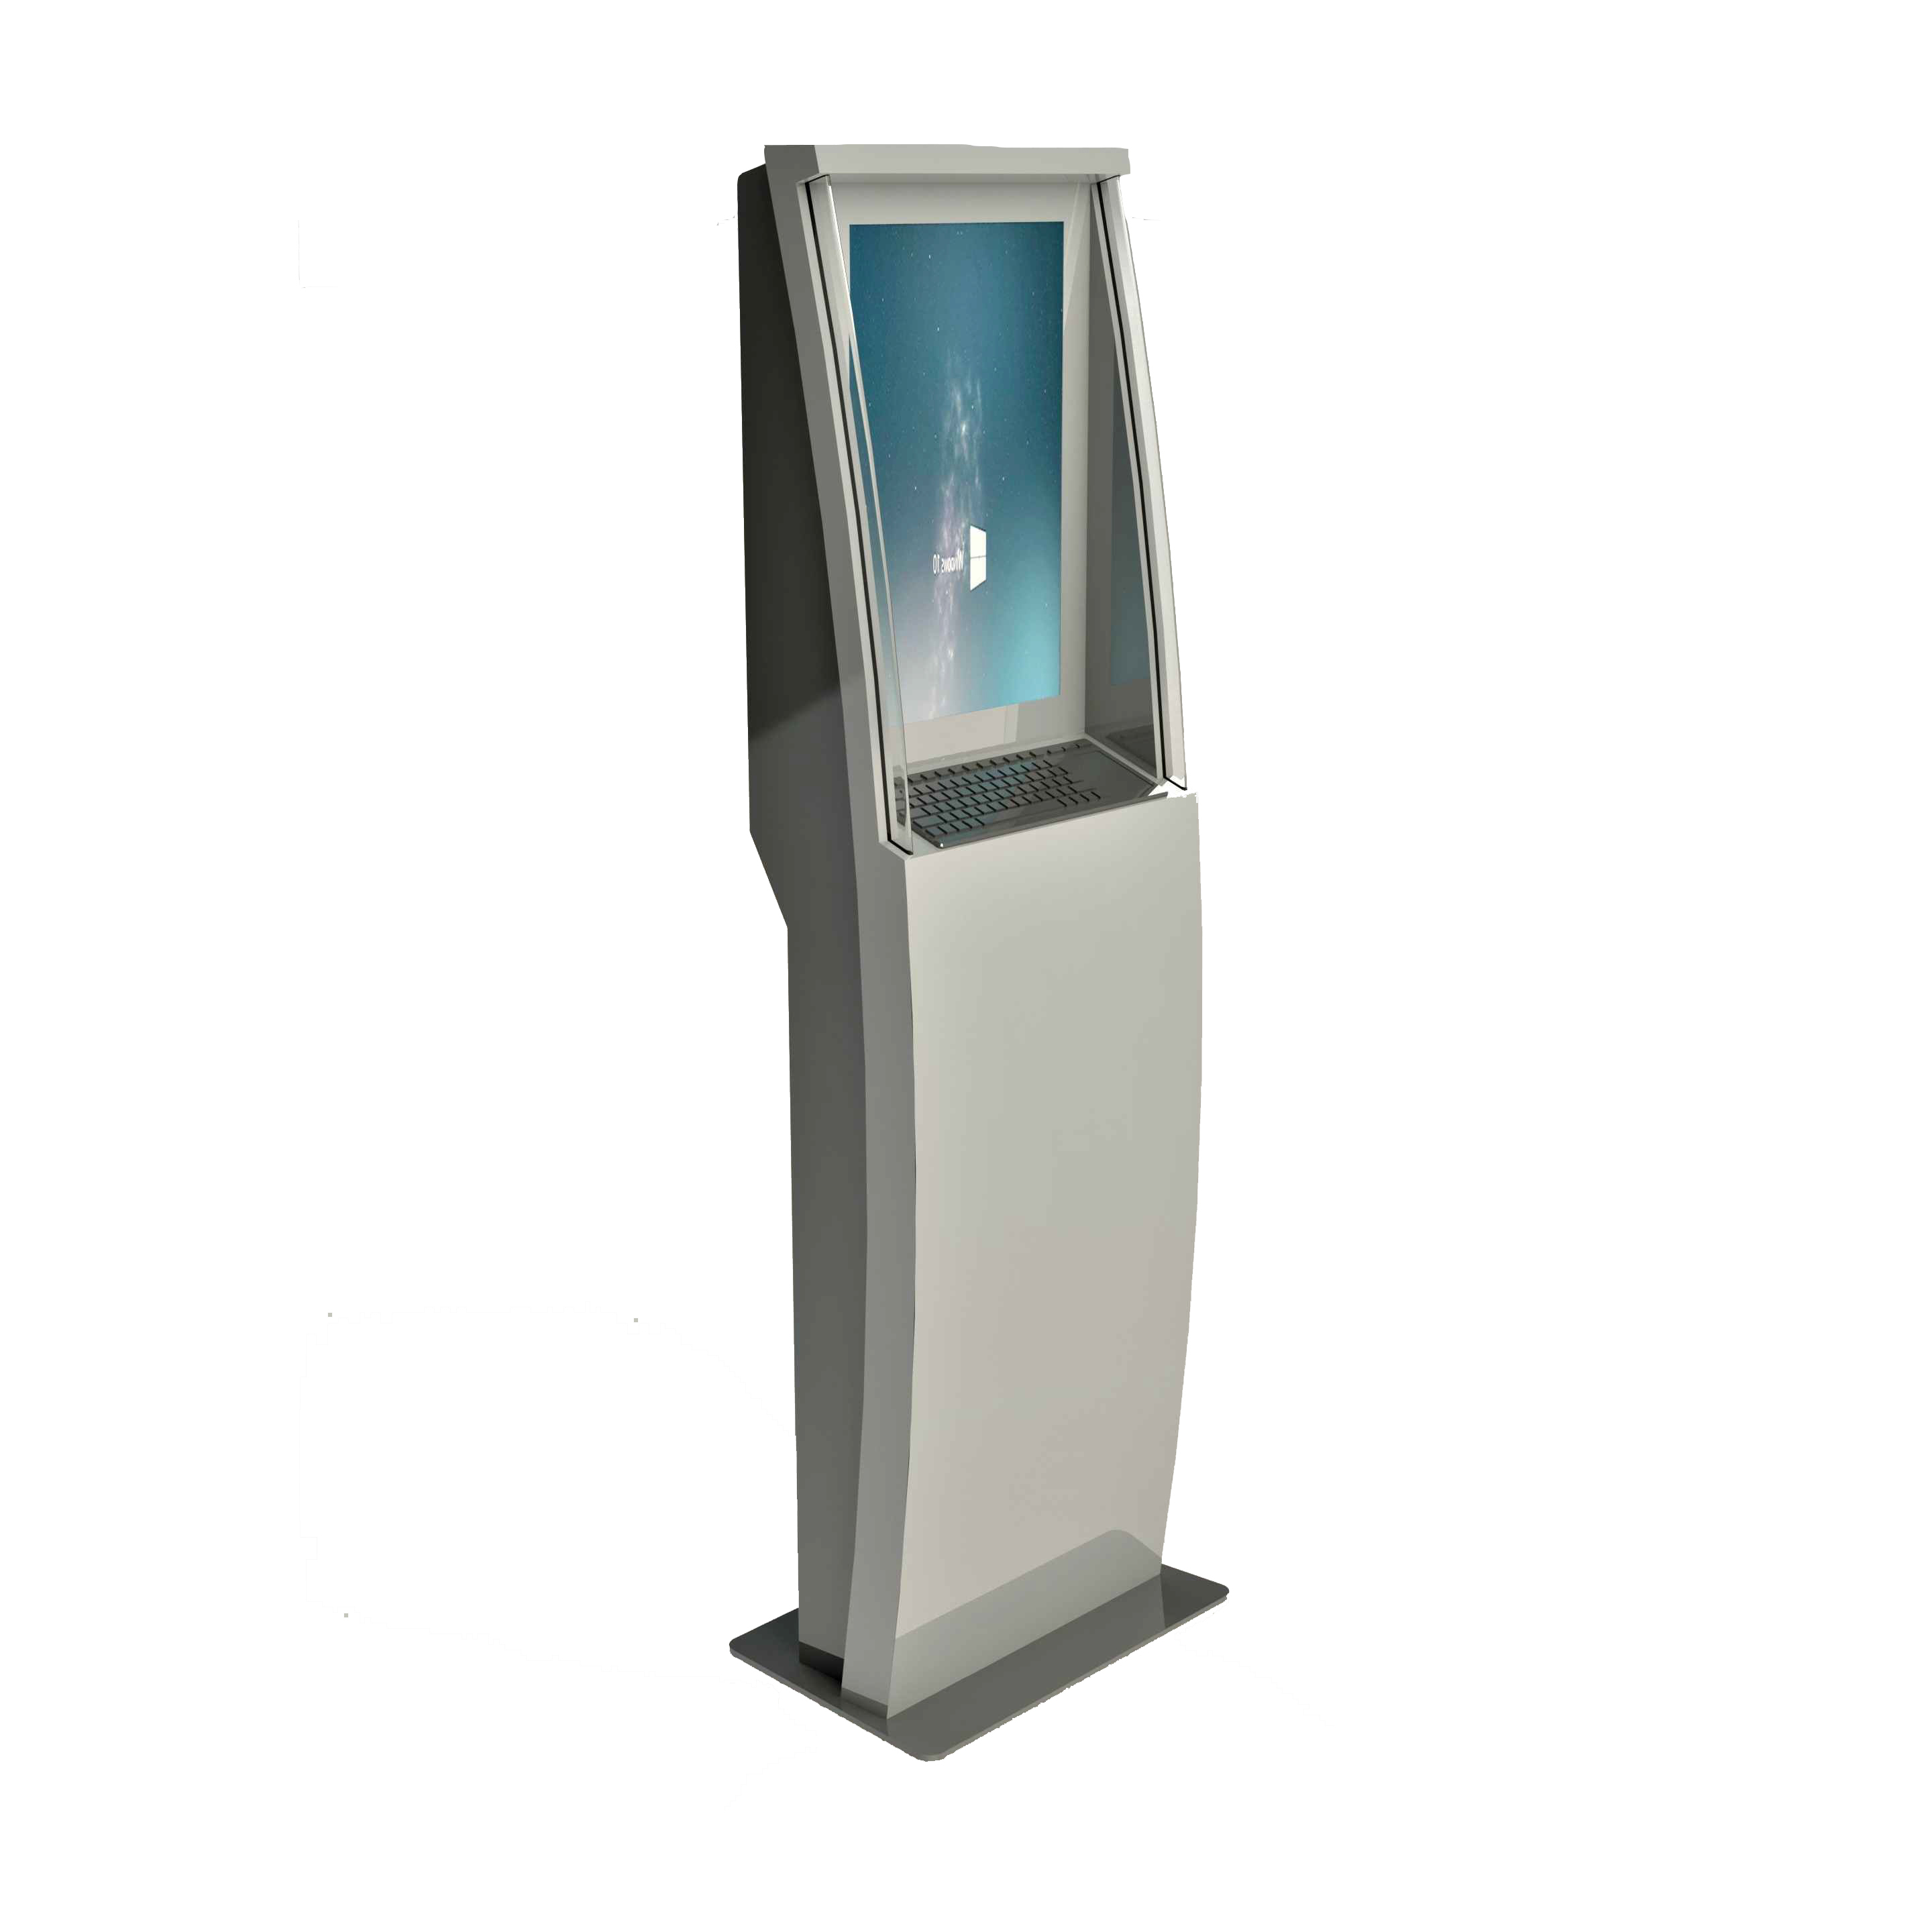 Kiosk-tra-cuu-thong-tin-AT-K17M2